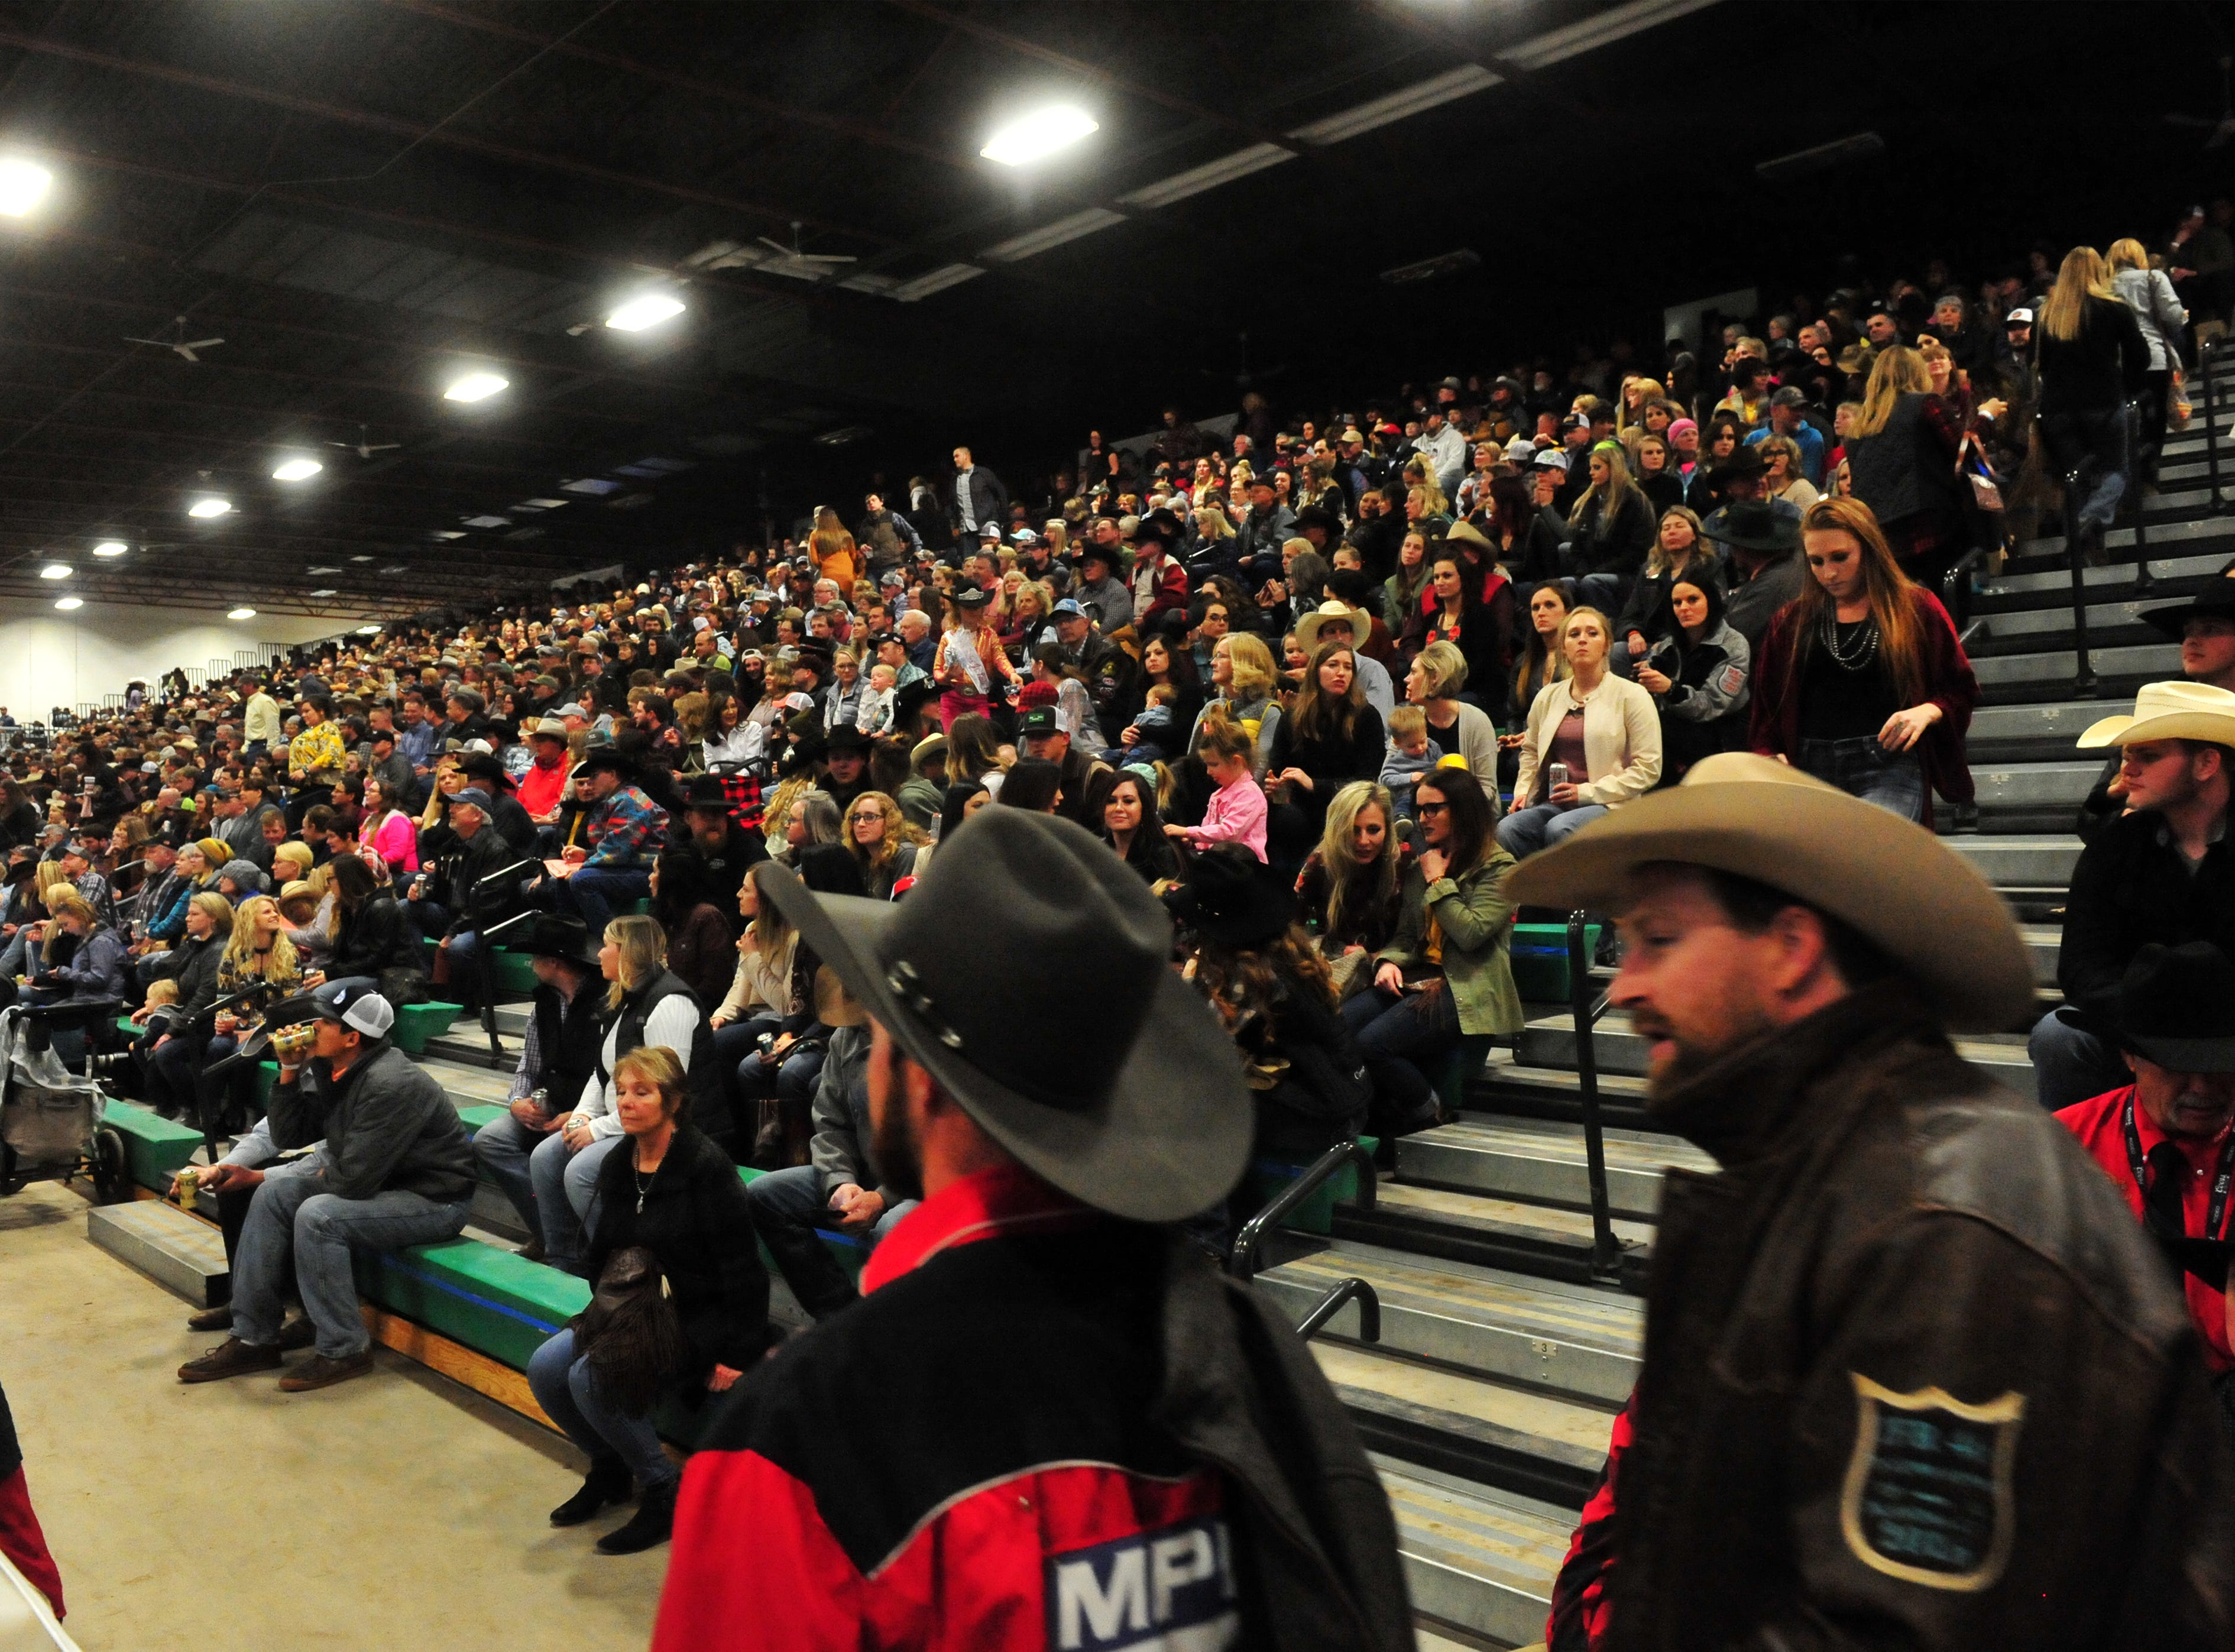 Bleachers full of rodeo fans at the Montana Pro Rodeo Circuit Finals in the Pacific Steel and Recycling Four Seasons Arena, Friday, January 11, 2019.